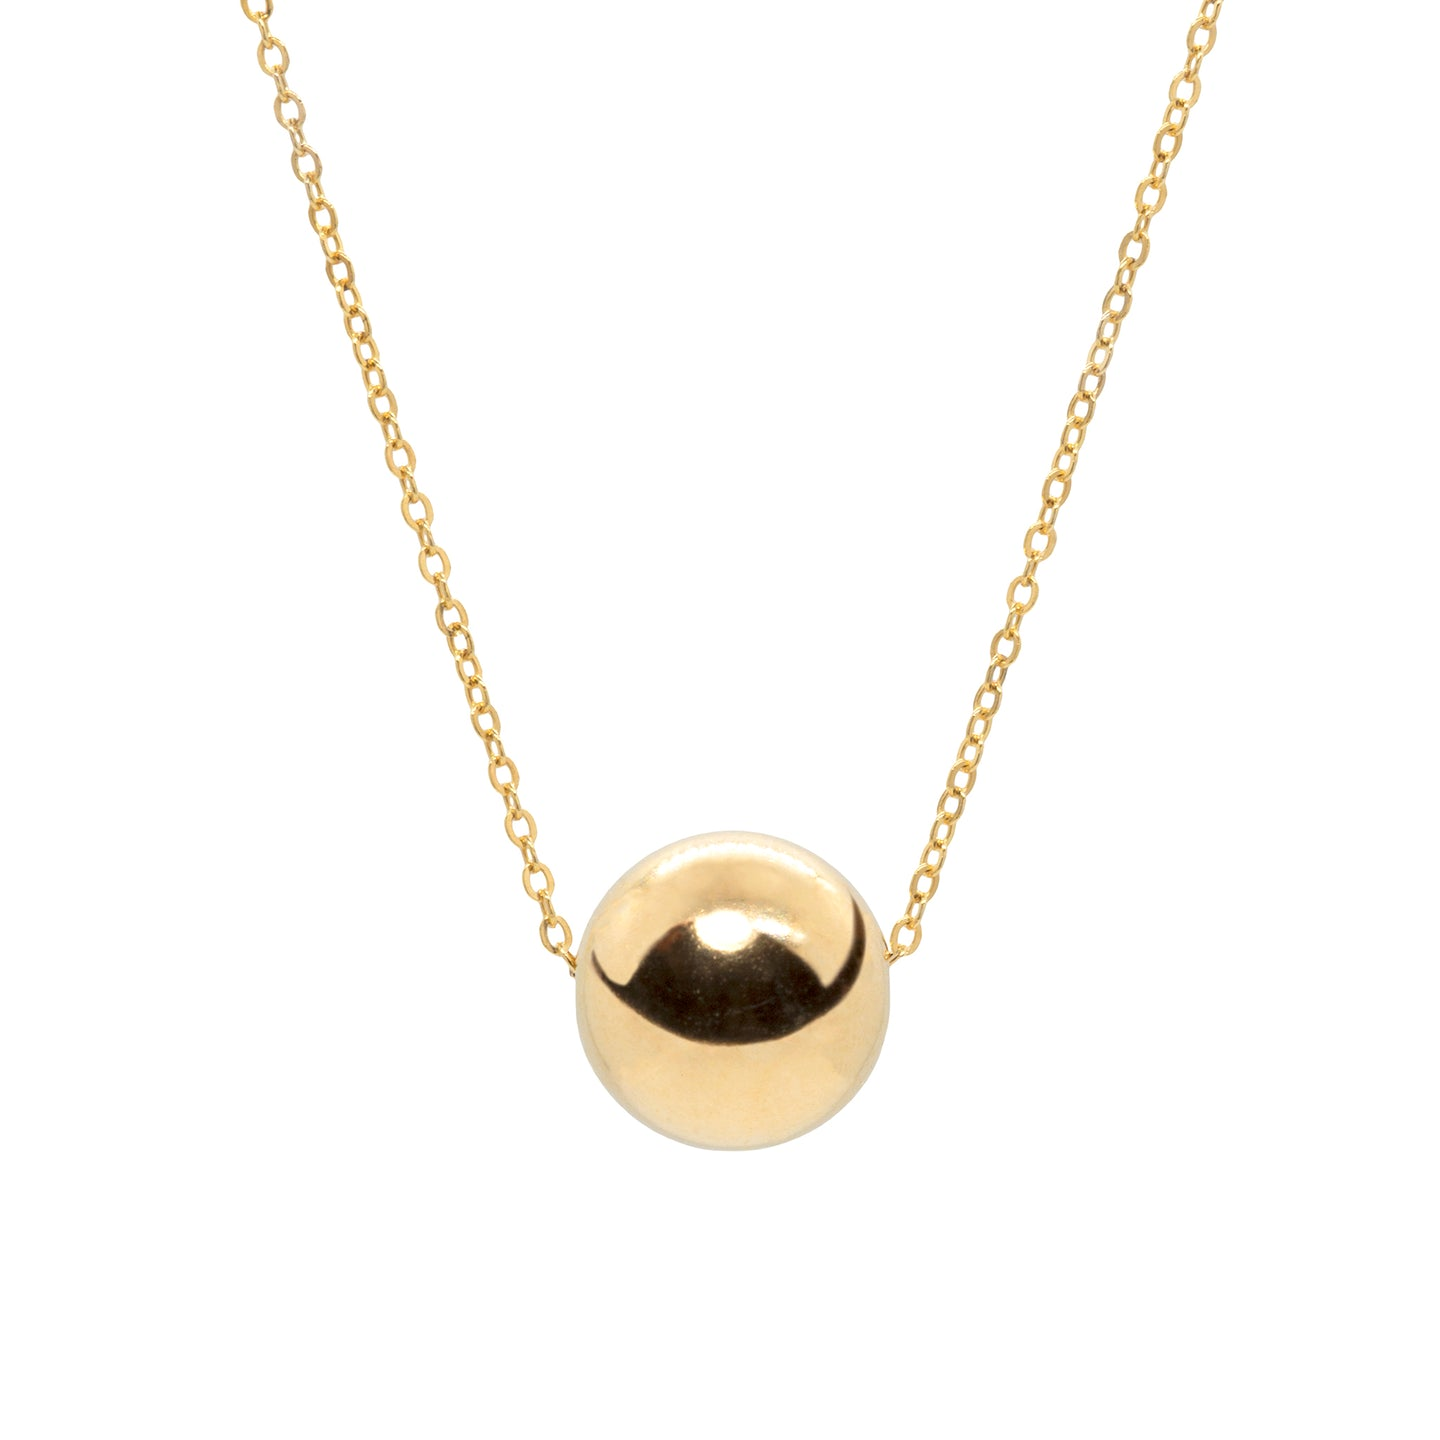 Floating Sphere Necklace